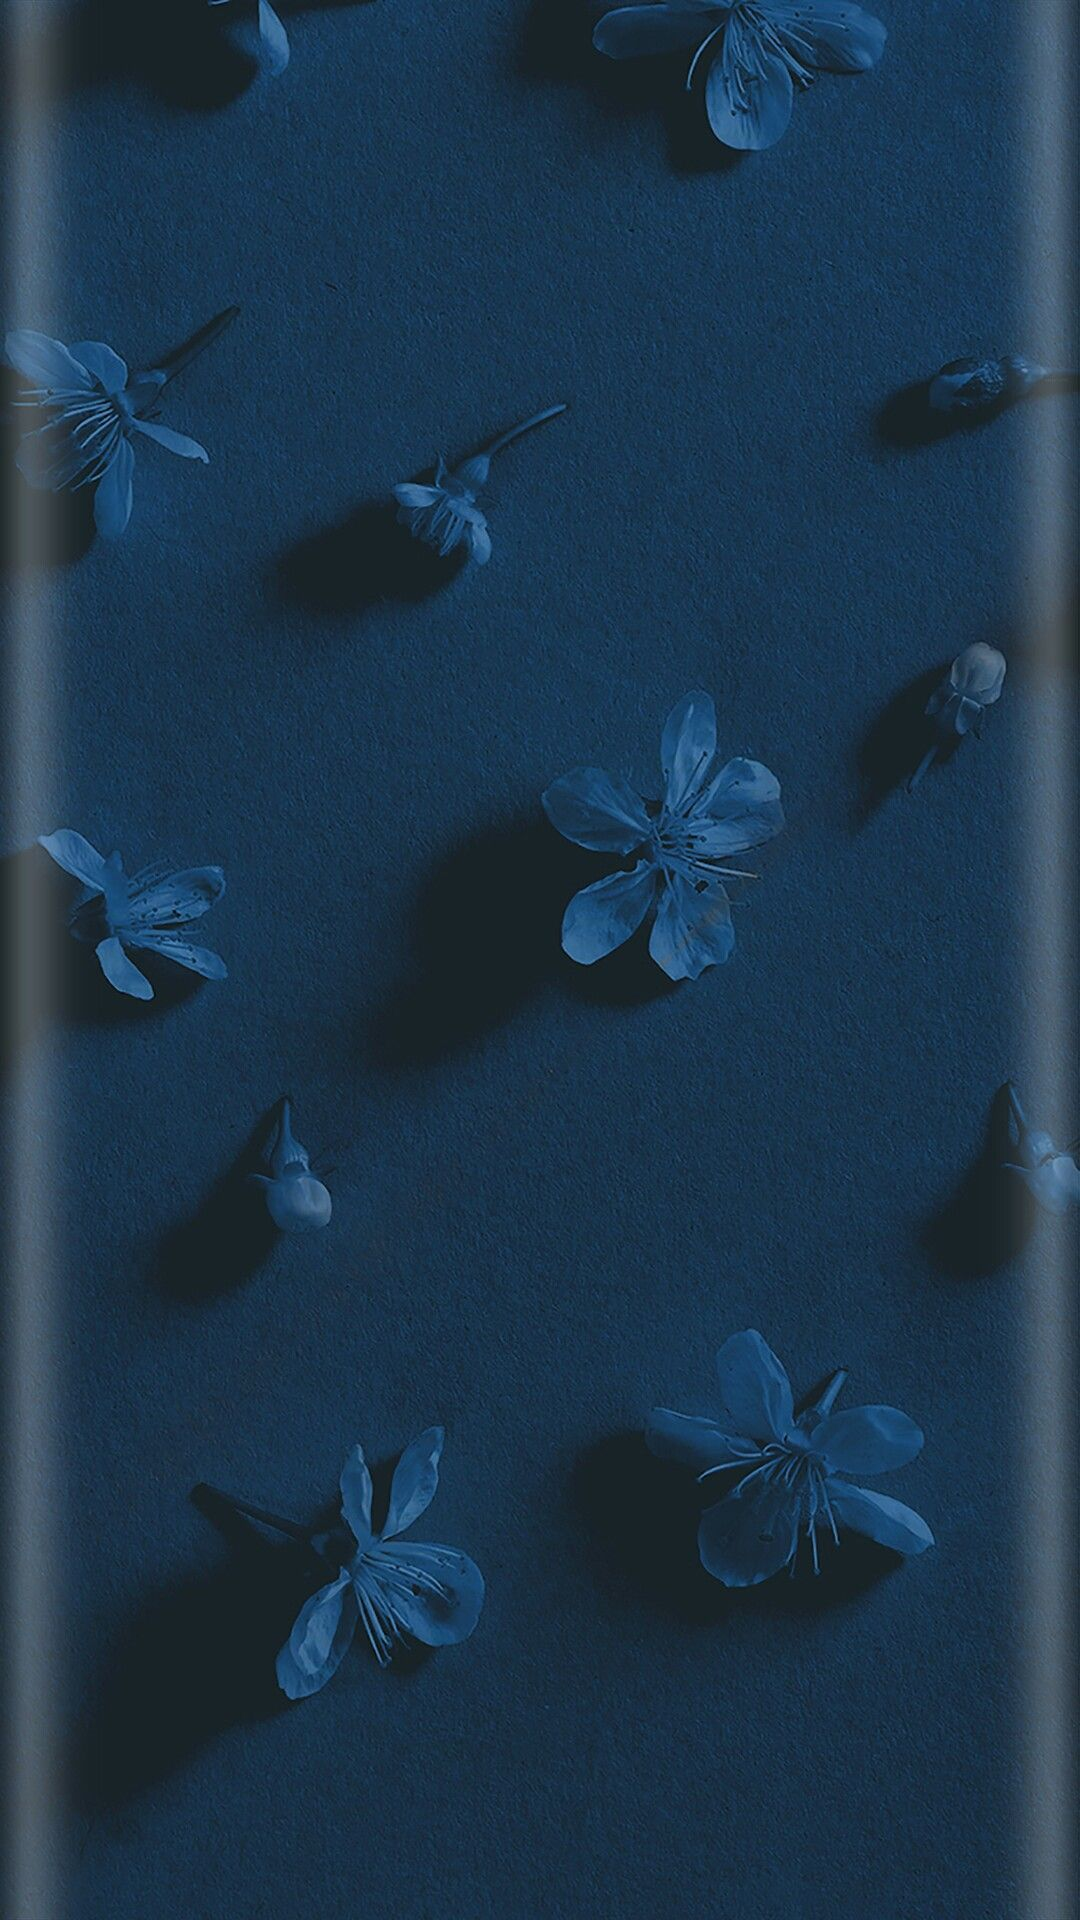 Cute Dark Android Background Blue Wallpaper Iphone Dark Blue Wallpaper Blue Wallpapers